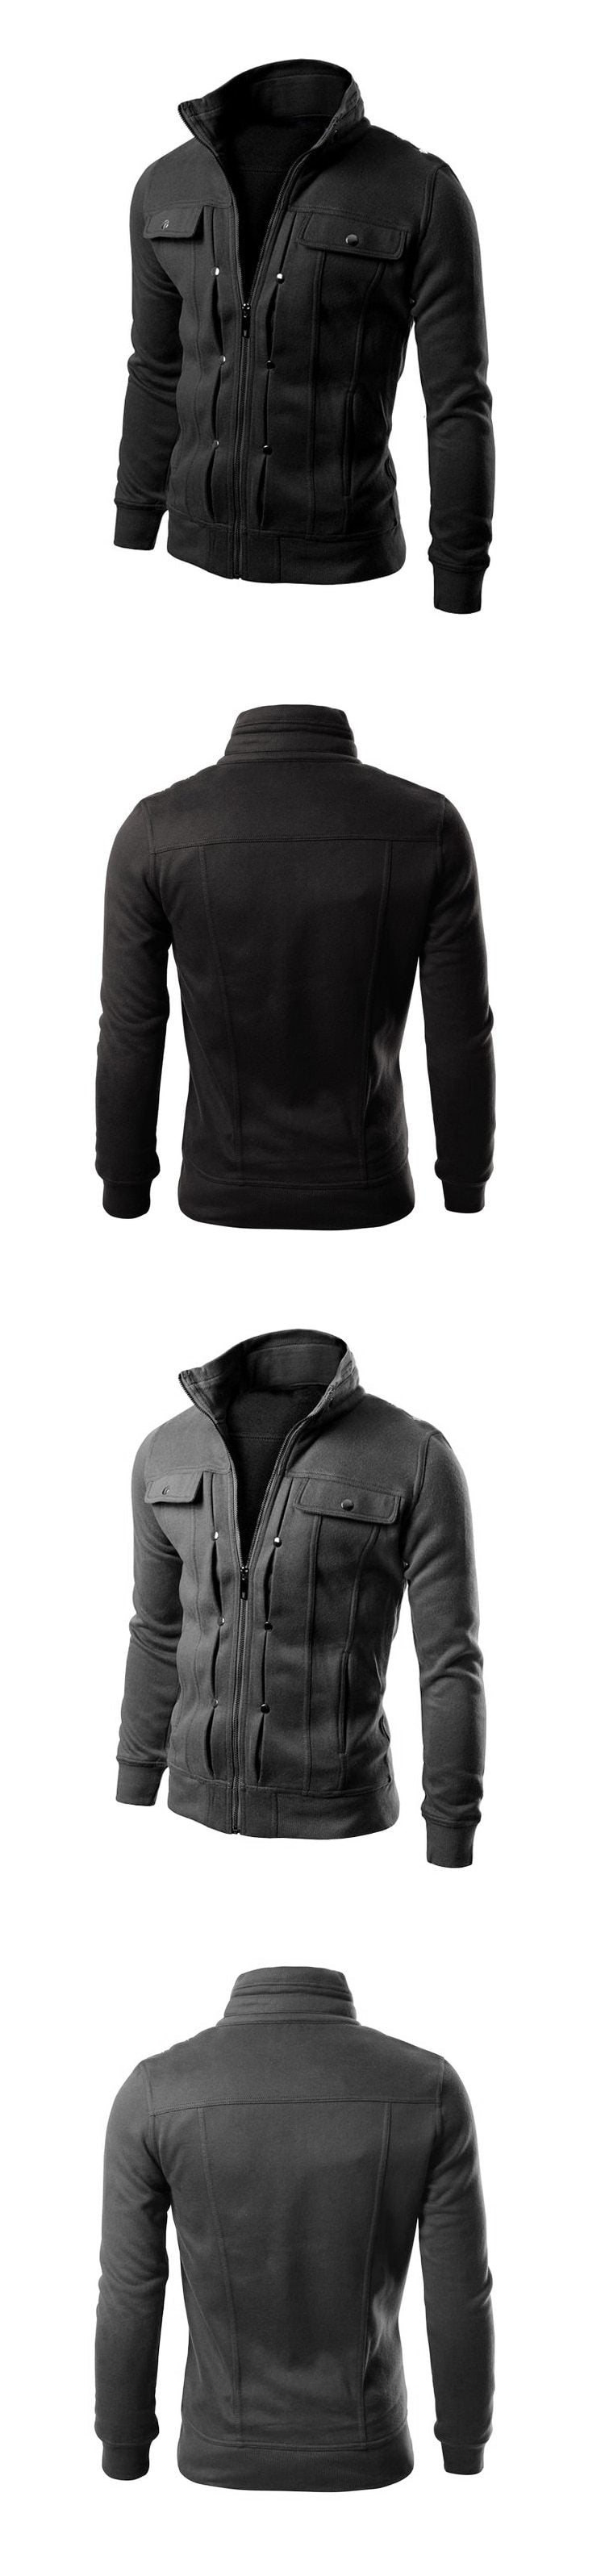 Men's Cardigan Multi Button Hoodies Fashion Sweatshirt Casual Male Tracksuits Men Brand Clothing N432